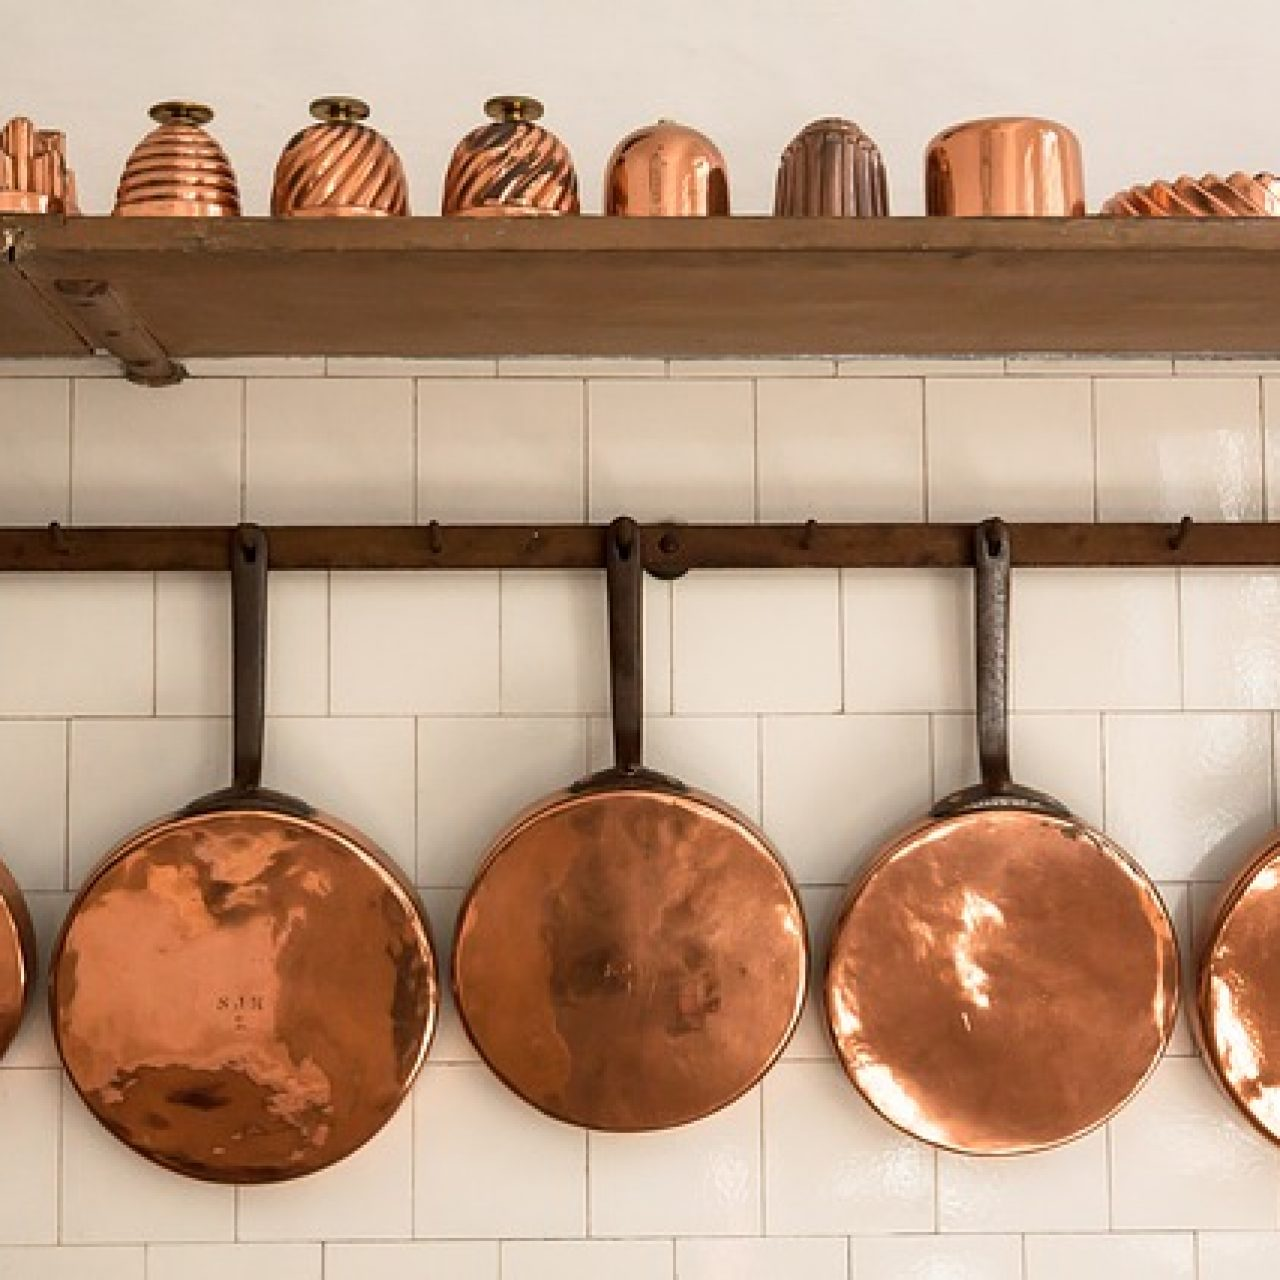 Silver and copper have both been used for centuries for their antimicrobial properties